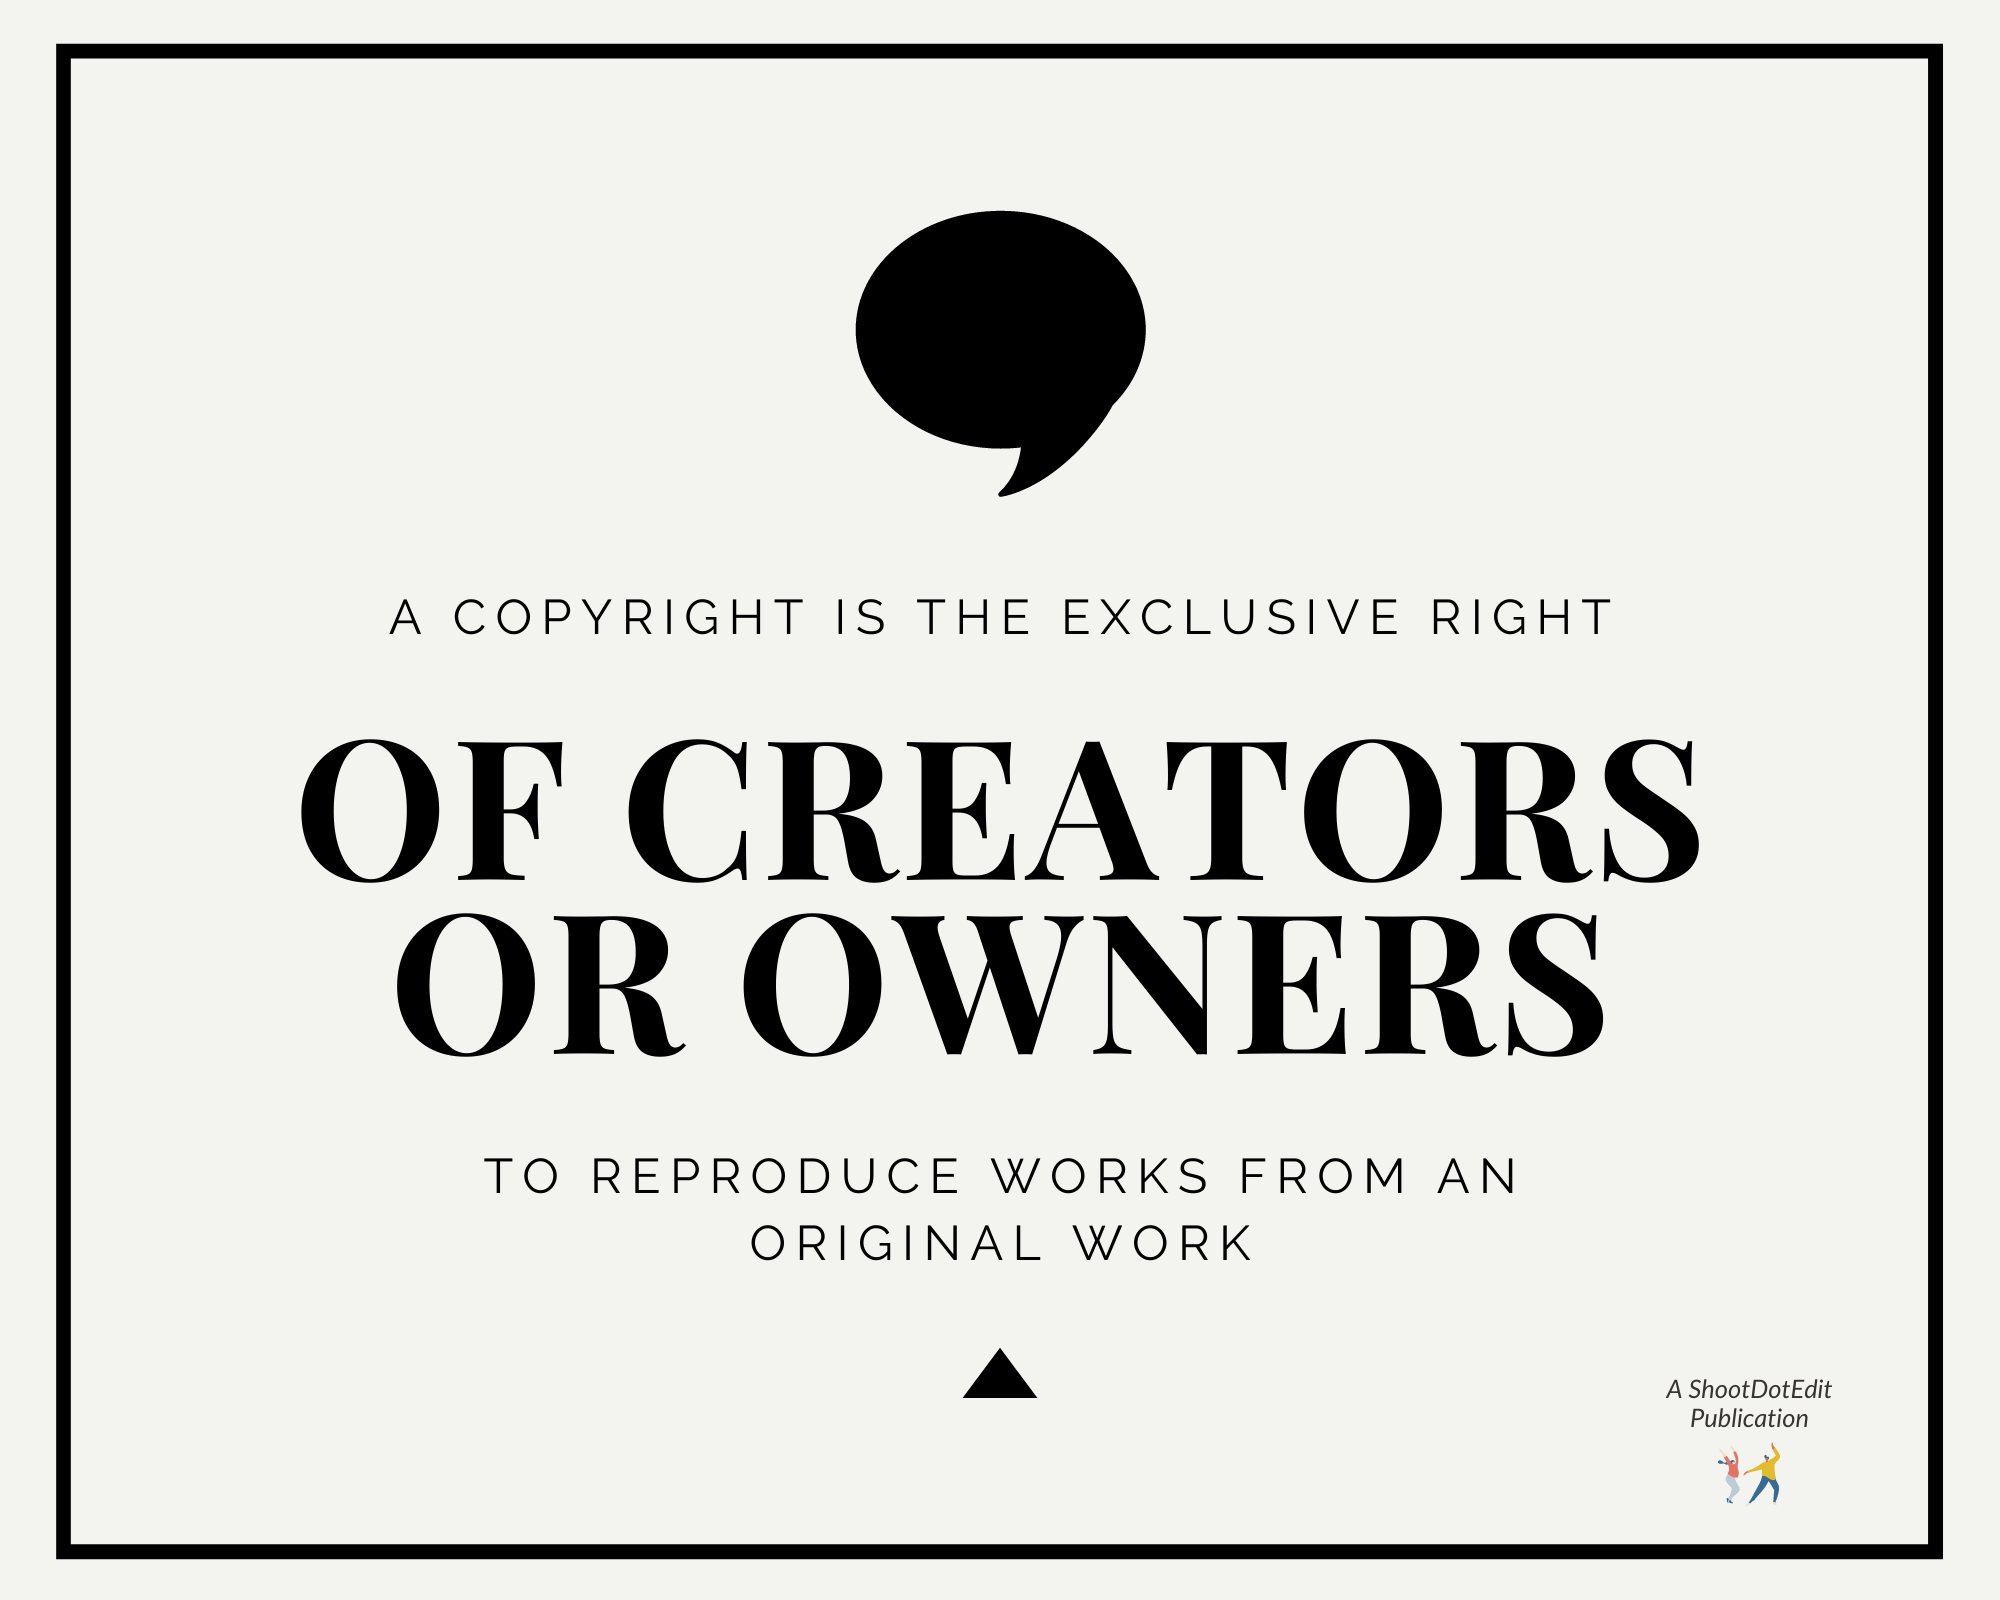 Infographic stating a copyright is the exclusive right of creators or owners to reproduce works from an original work